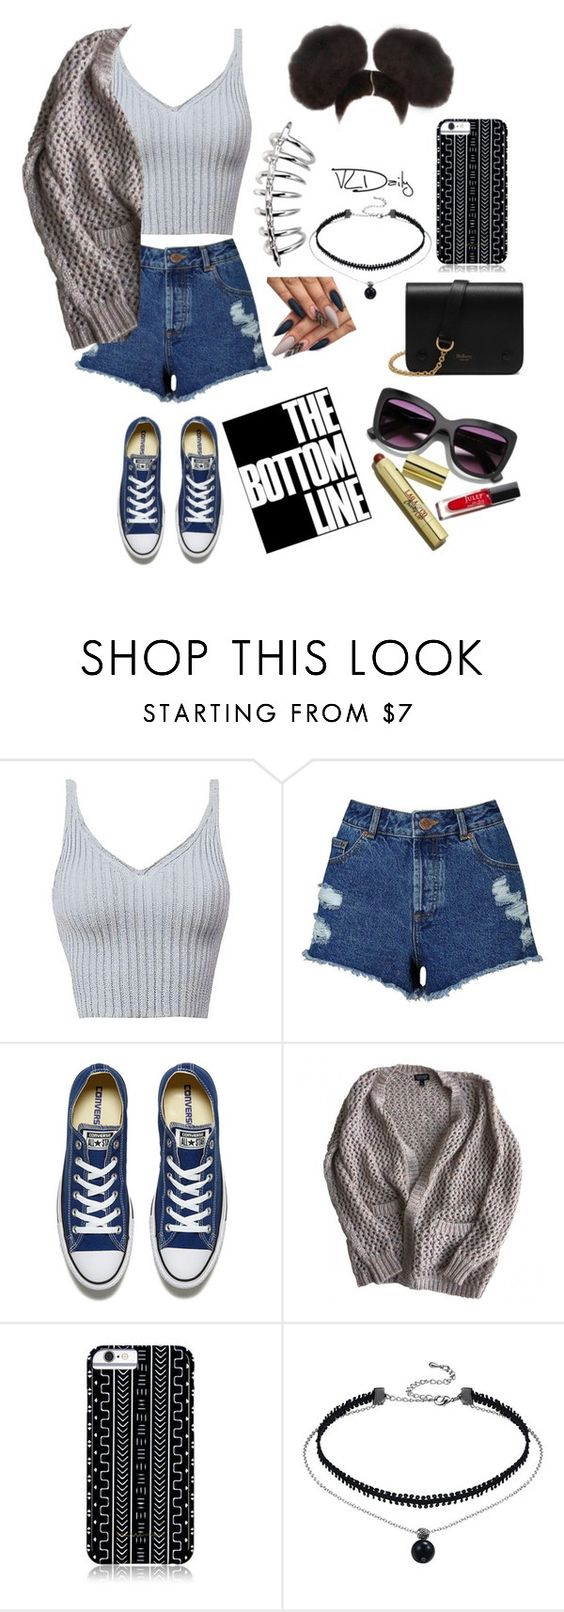 """Untitled #59"" by mainengg ❤ liked on Polyvore featuring Miss Selfridge, Converse, Topshop, Savannah Hayes and Mulberry"